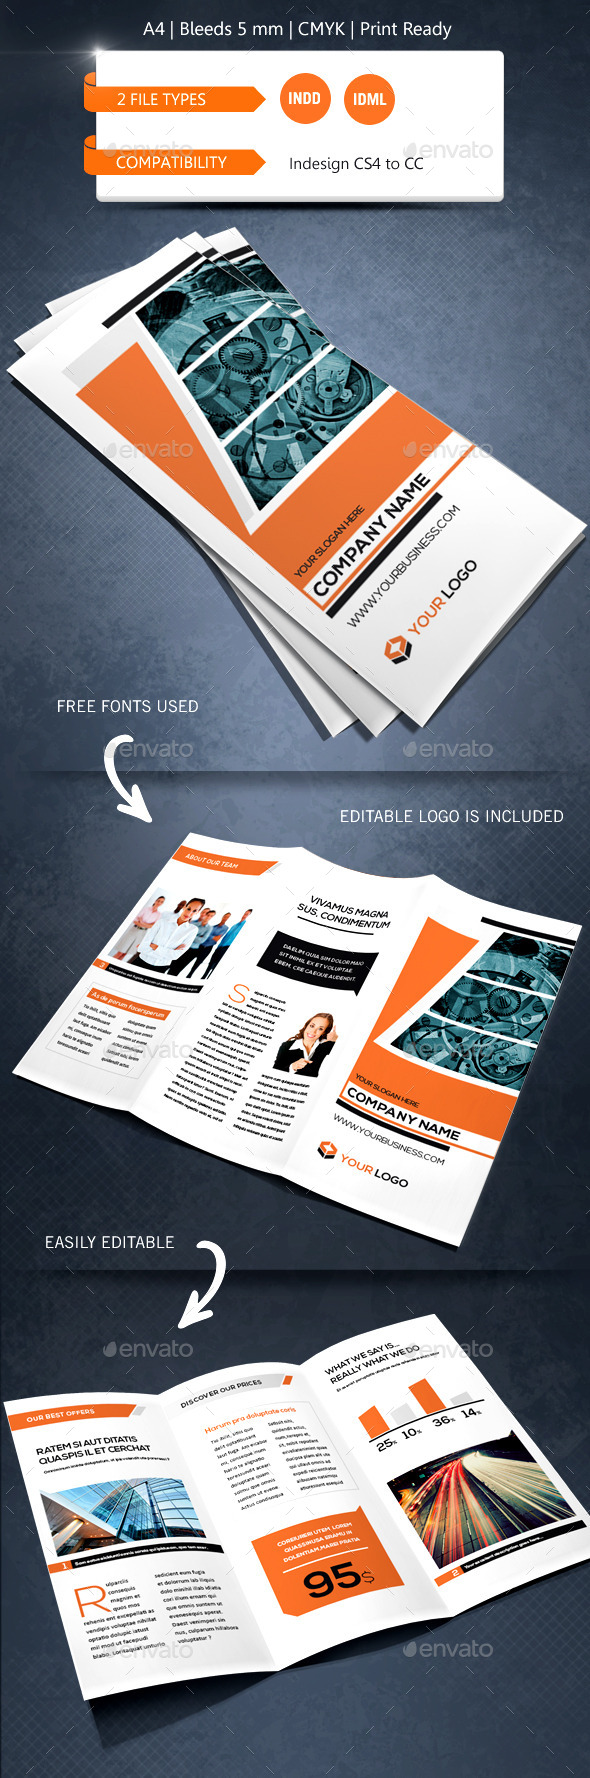 GraphicRiver Creative & Corporate Trifold Brochure Template 9022209